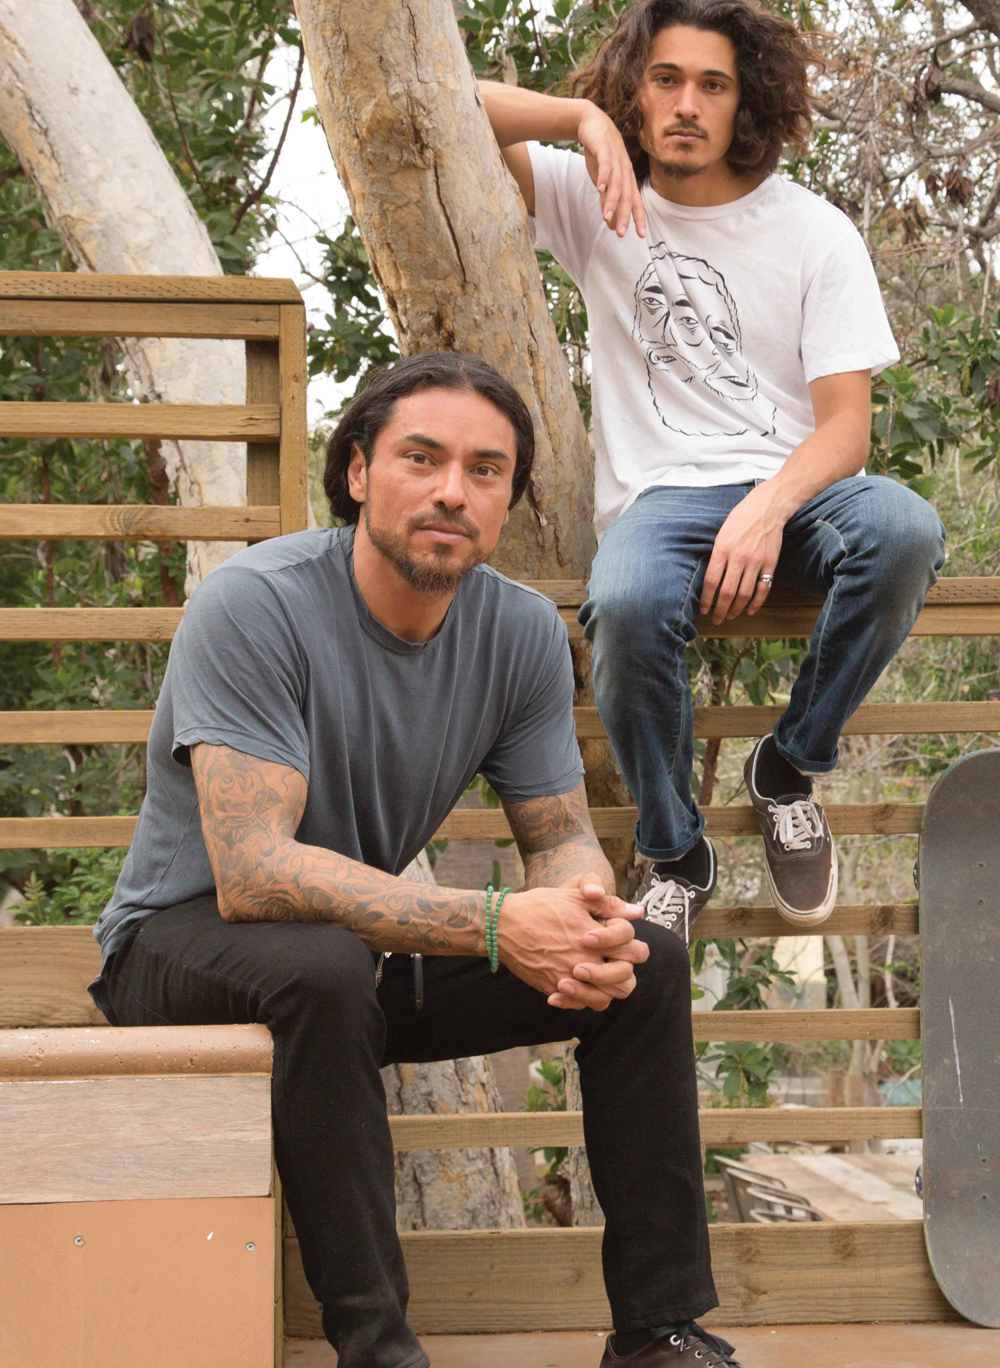 Pat Tenore, Founder and President of RVCA